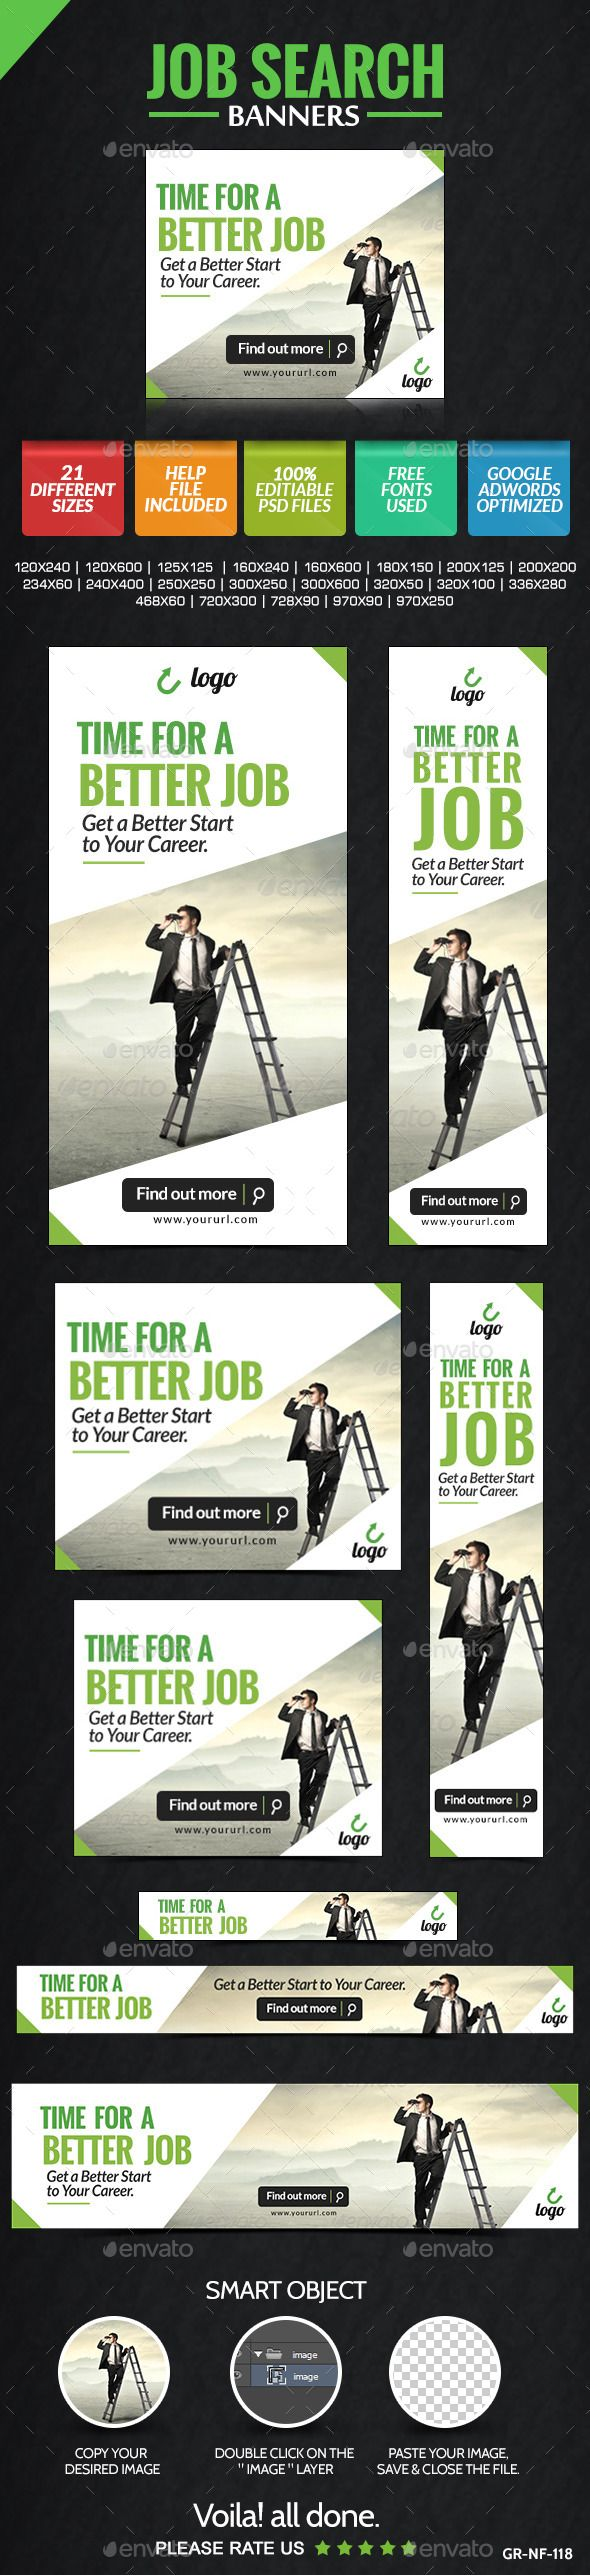 Job Search Banners Template PSD   Buy and Download: http://graphicriver.net/item/job-search-banners/9088275?WT.ac=category_thumb&WT.z_author=doto&ref=ksioks